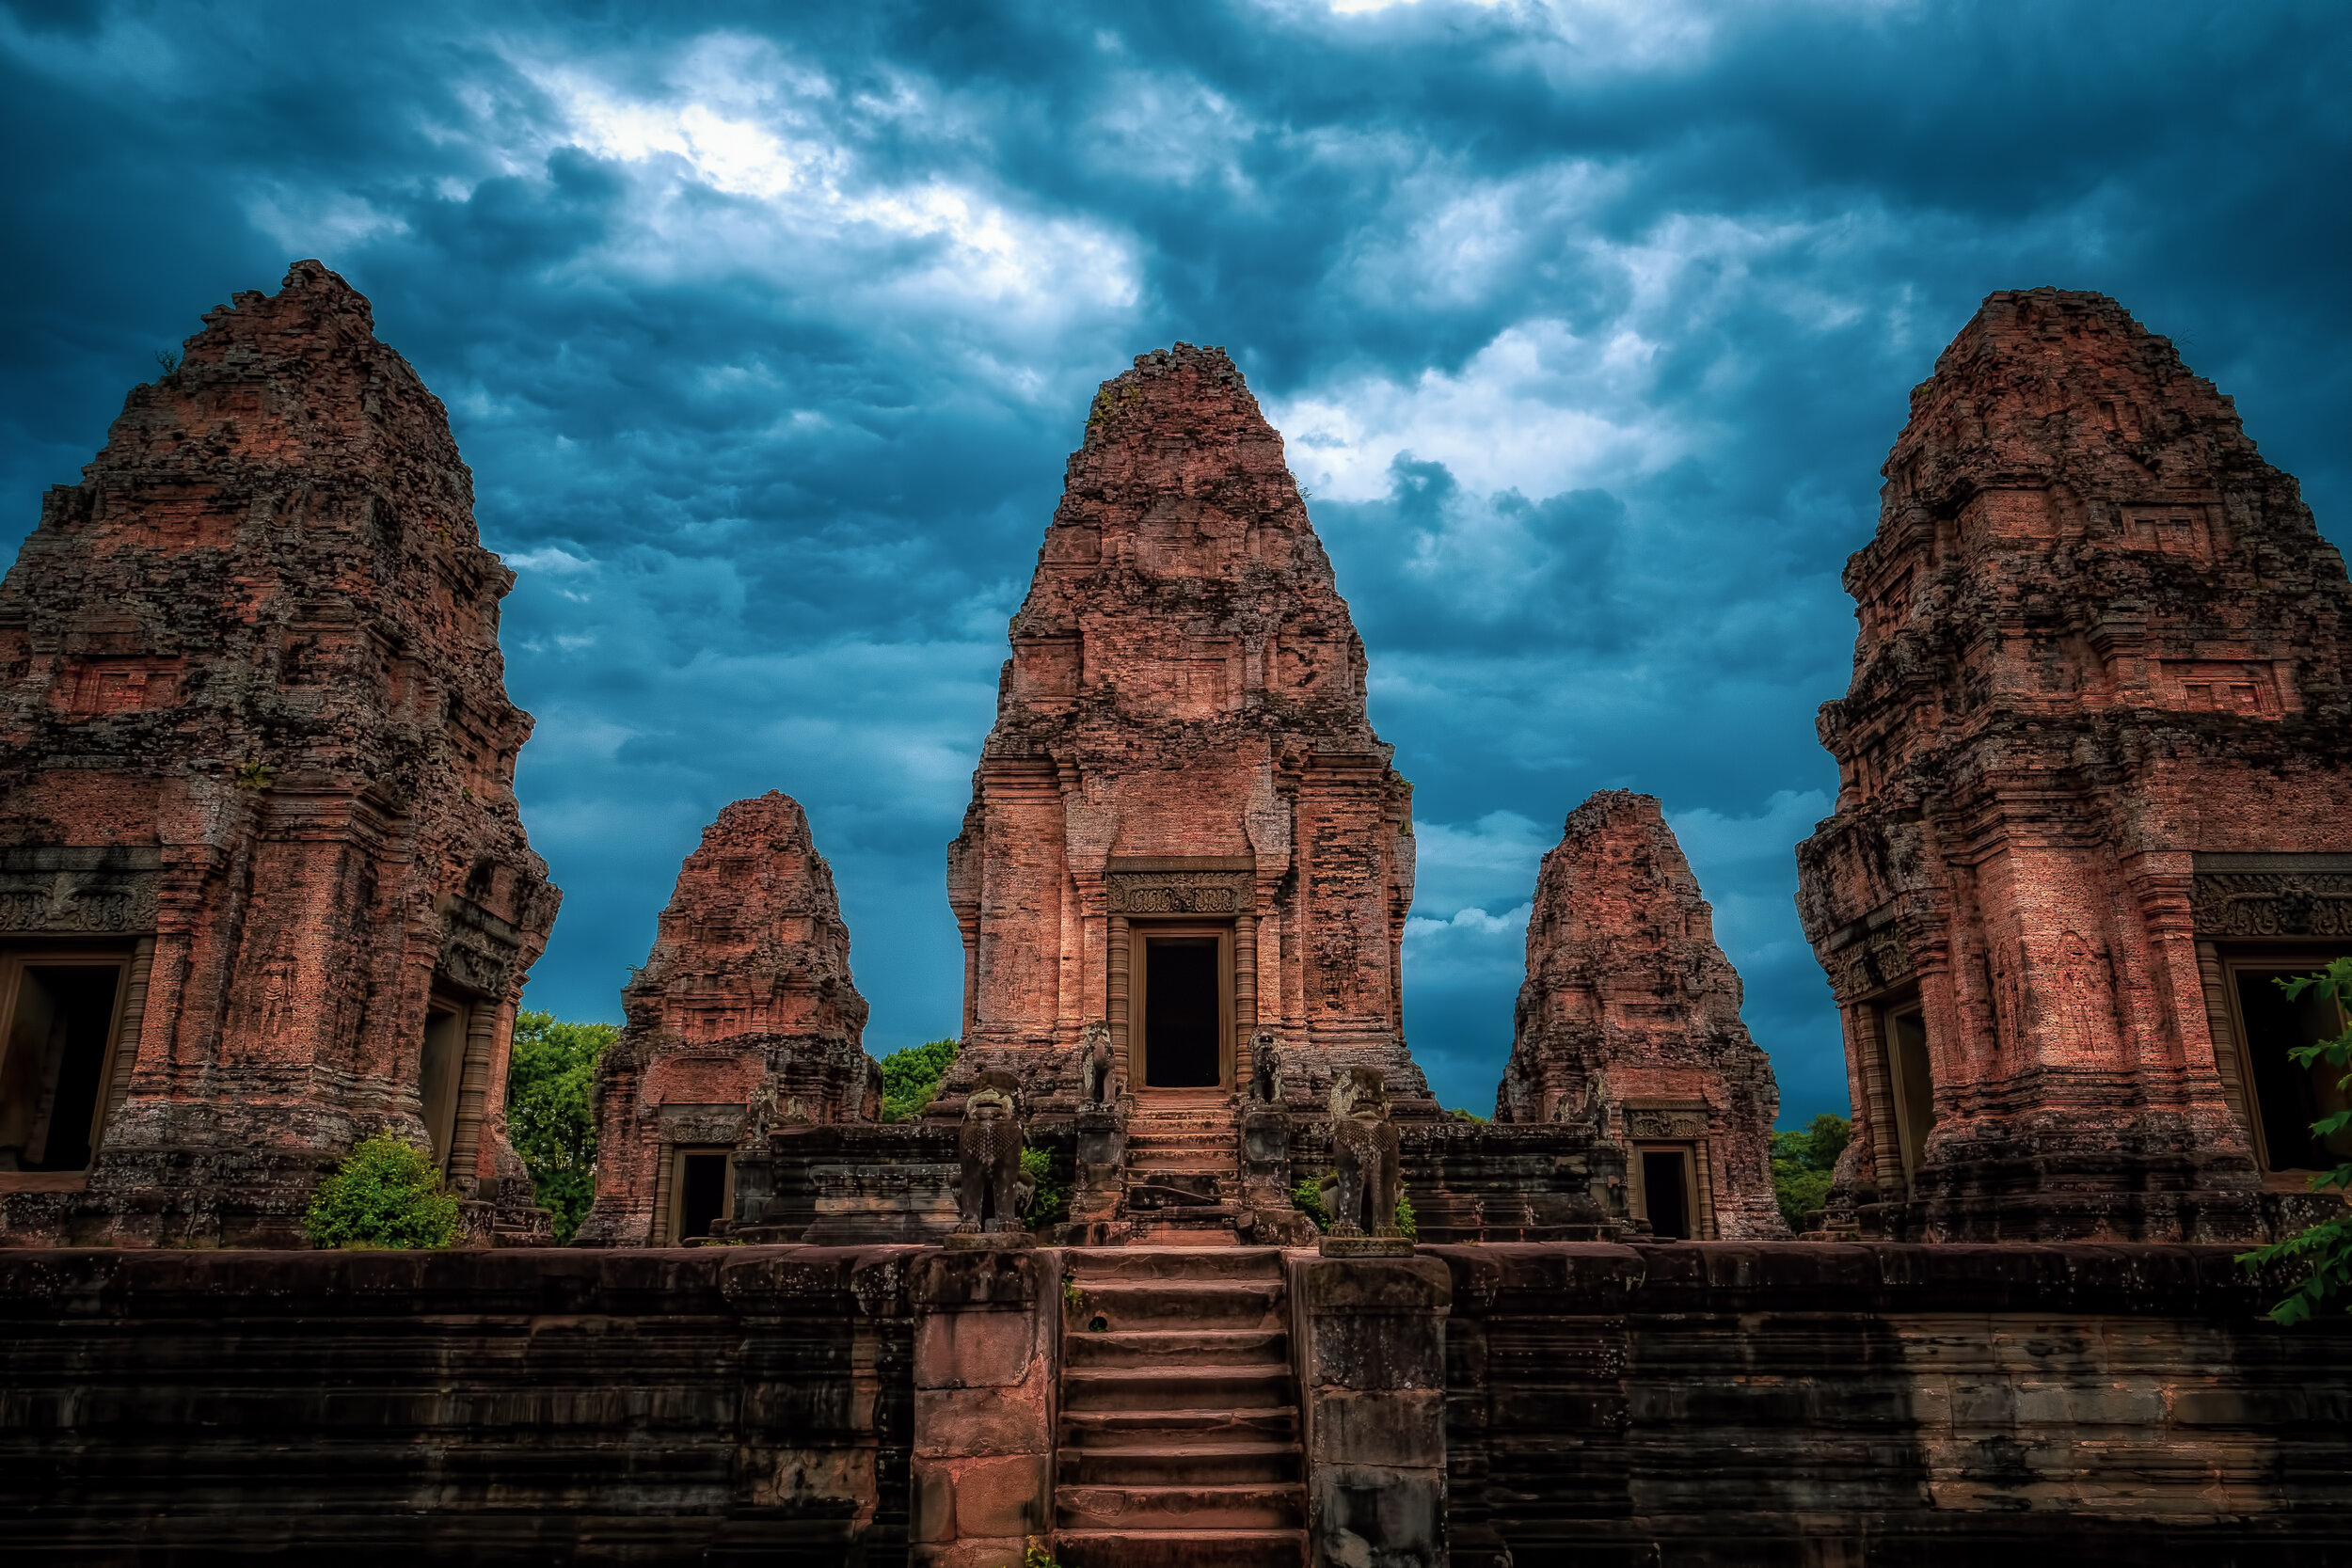 Enter the Temple - Fujifilm X-T3, 1/125 @ f/11, ISO 400, 16mm. One of many Angkor Temples in central Cambodia. The greatest obstacles to getting a good pic; the crowds and the intense heat. Still, this place should be on any photographer's short list.